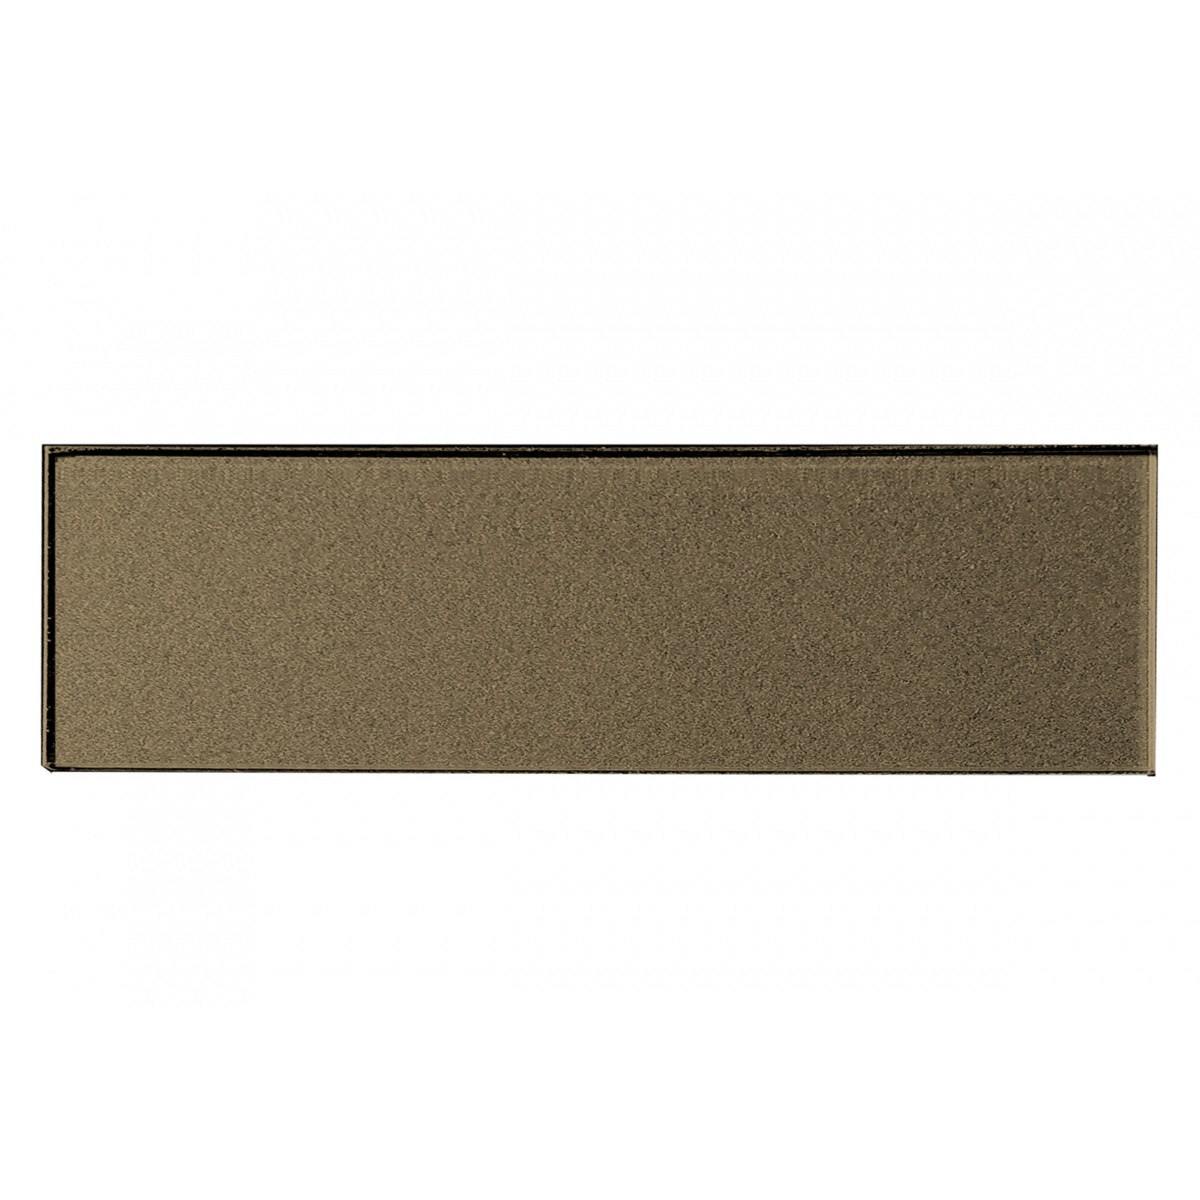 - Forever 3 In X 12 In Glass Subway Tile In ETERNAL BRONZE Glossy